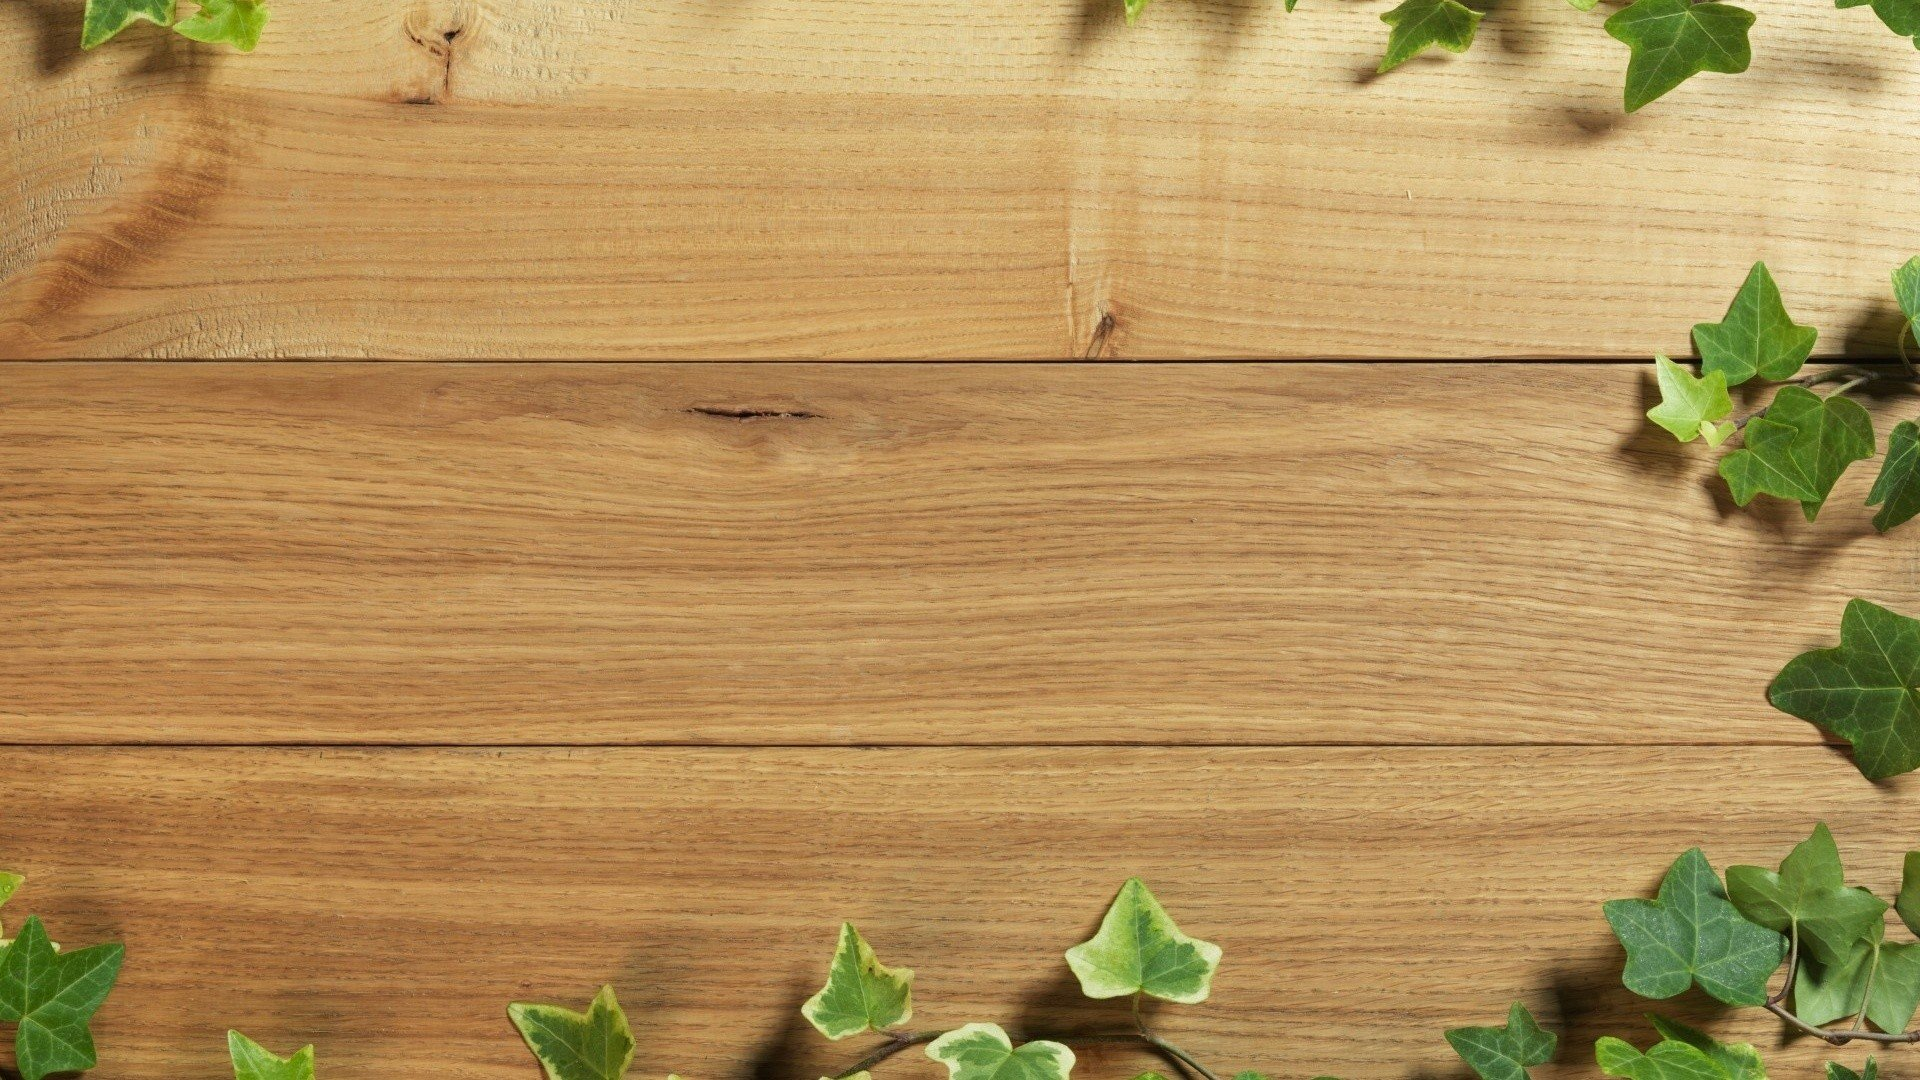 wood tables textures ivy board wallpaper 1920x1080